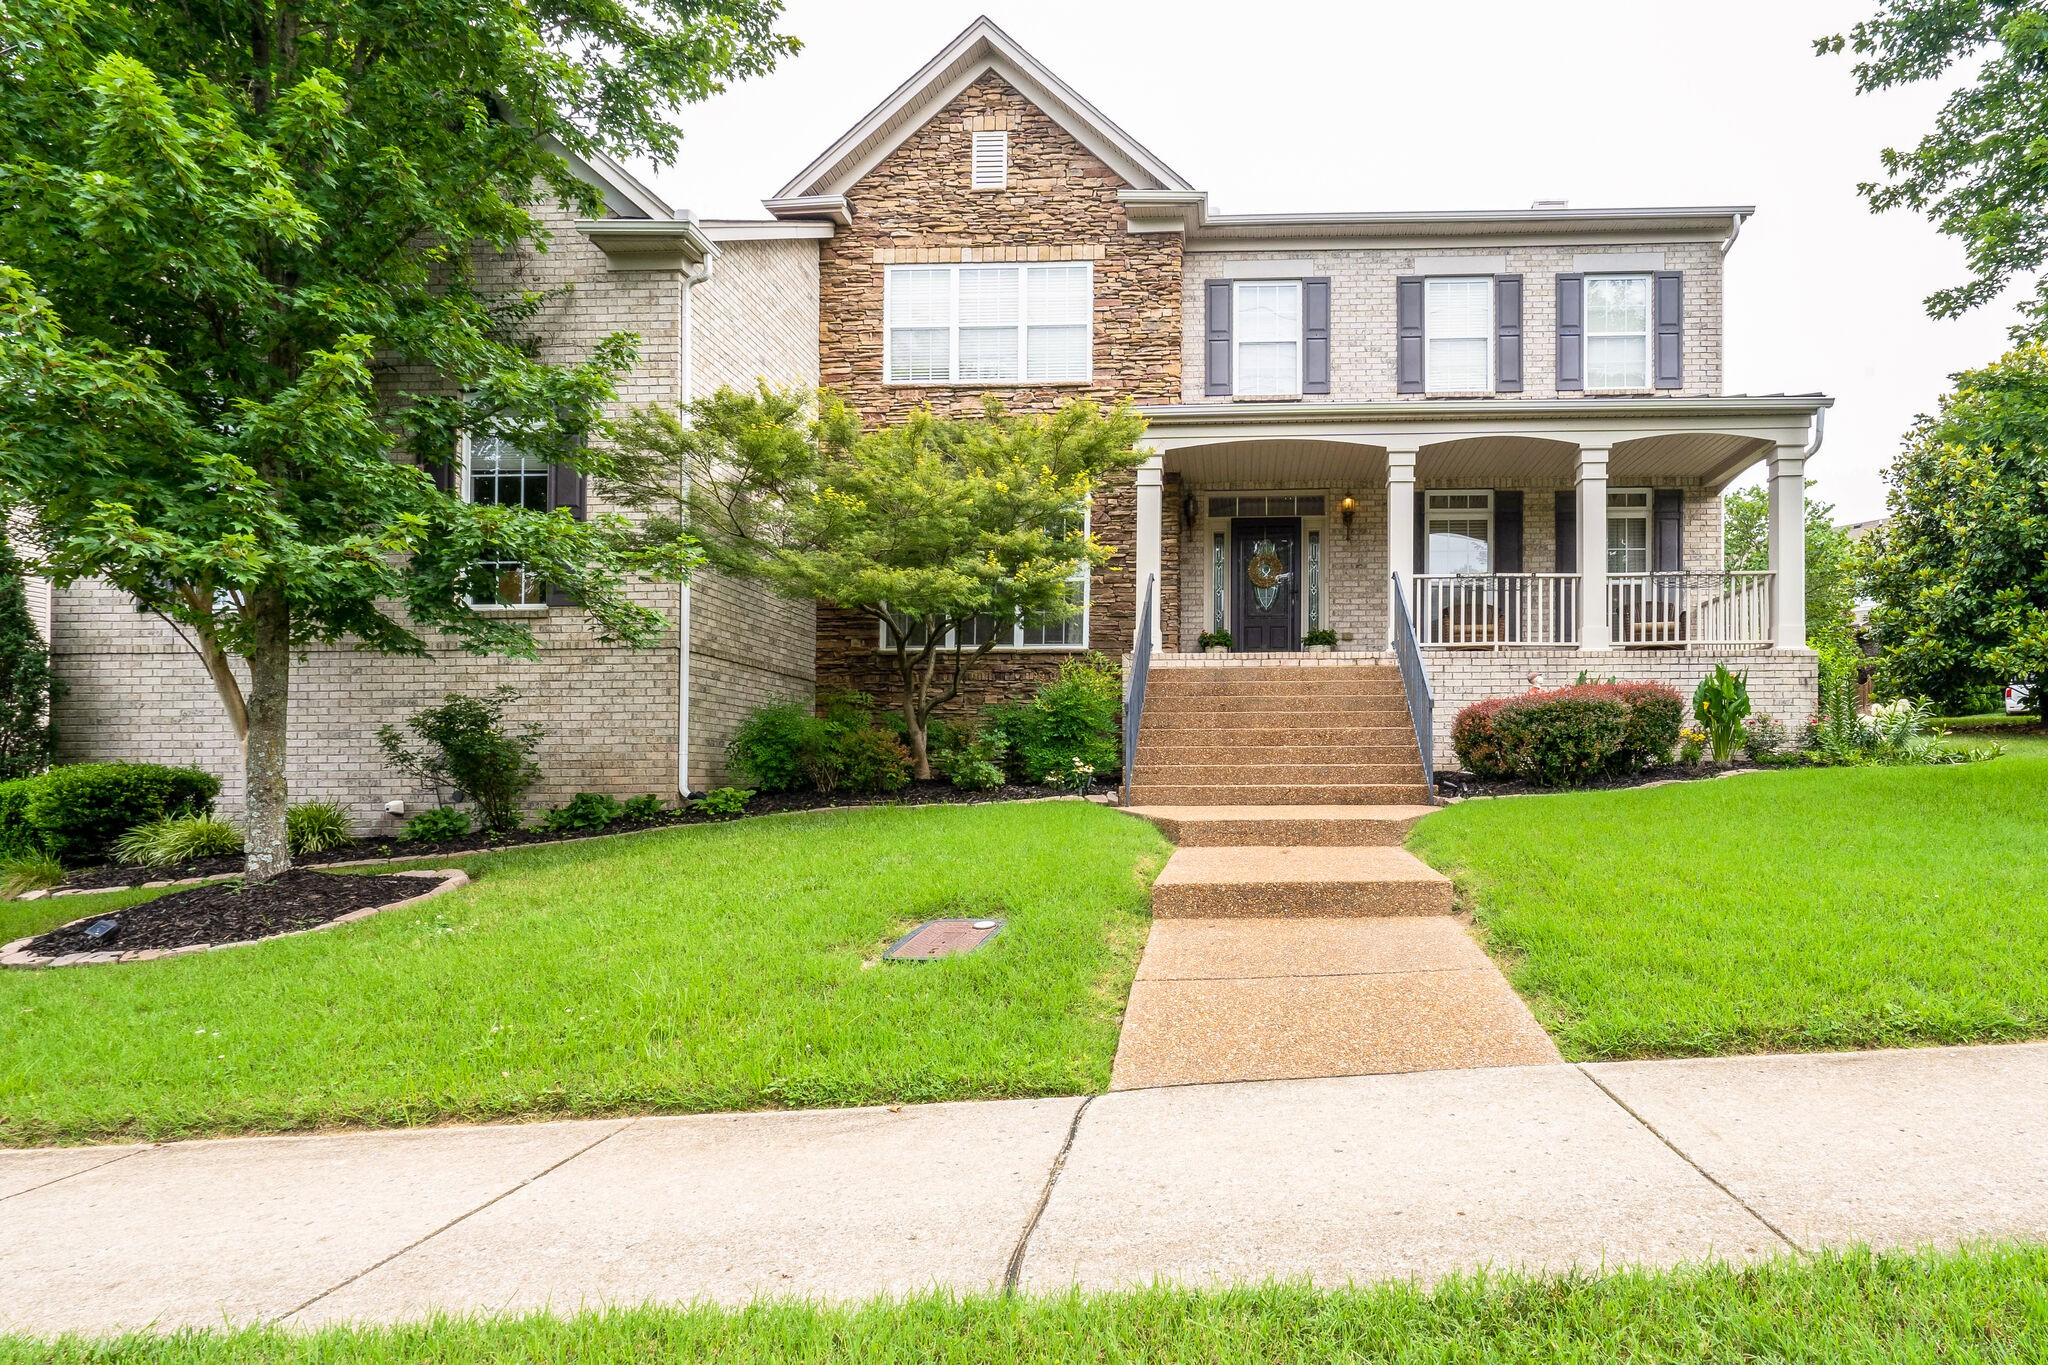 Professional Pictures added soon. Beautiful and Large Family home in the heart of everything! Open floor plan! Home Recently updated: New Roof & gutters, Quartz Countertops, SS appliances., new light fixtures and fresh paint throughout. Fabulous Neighborhood Amenities.